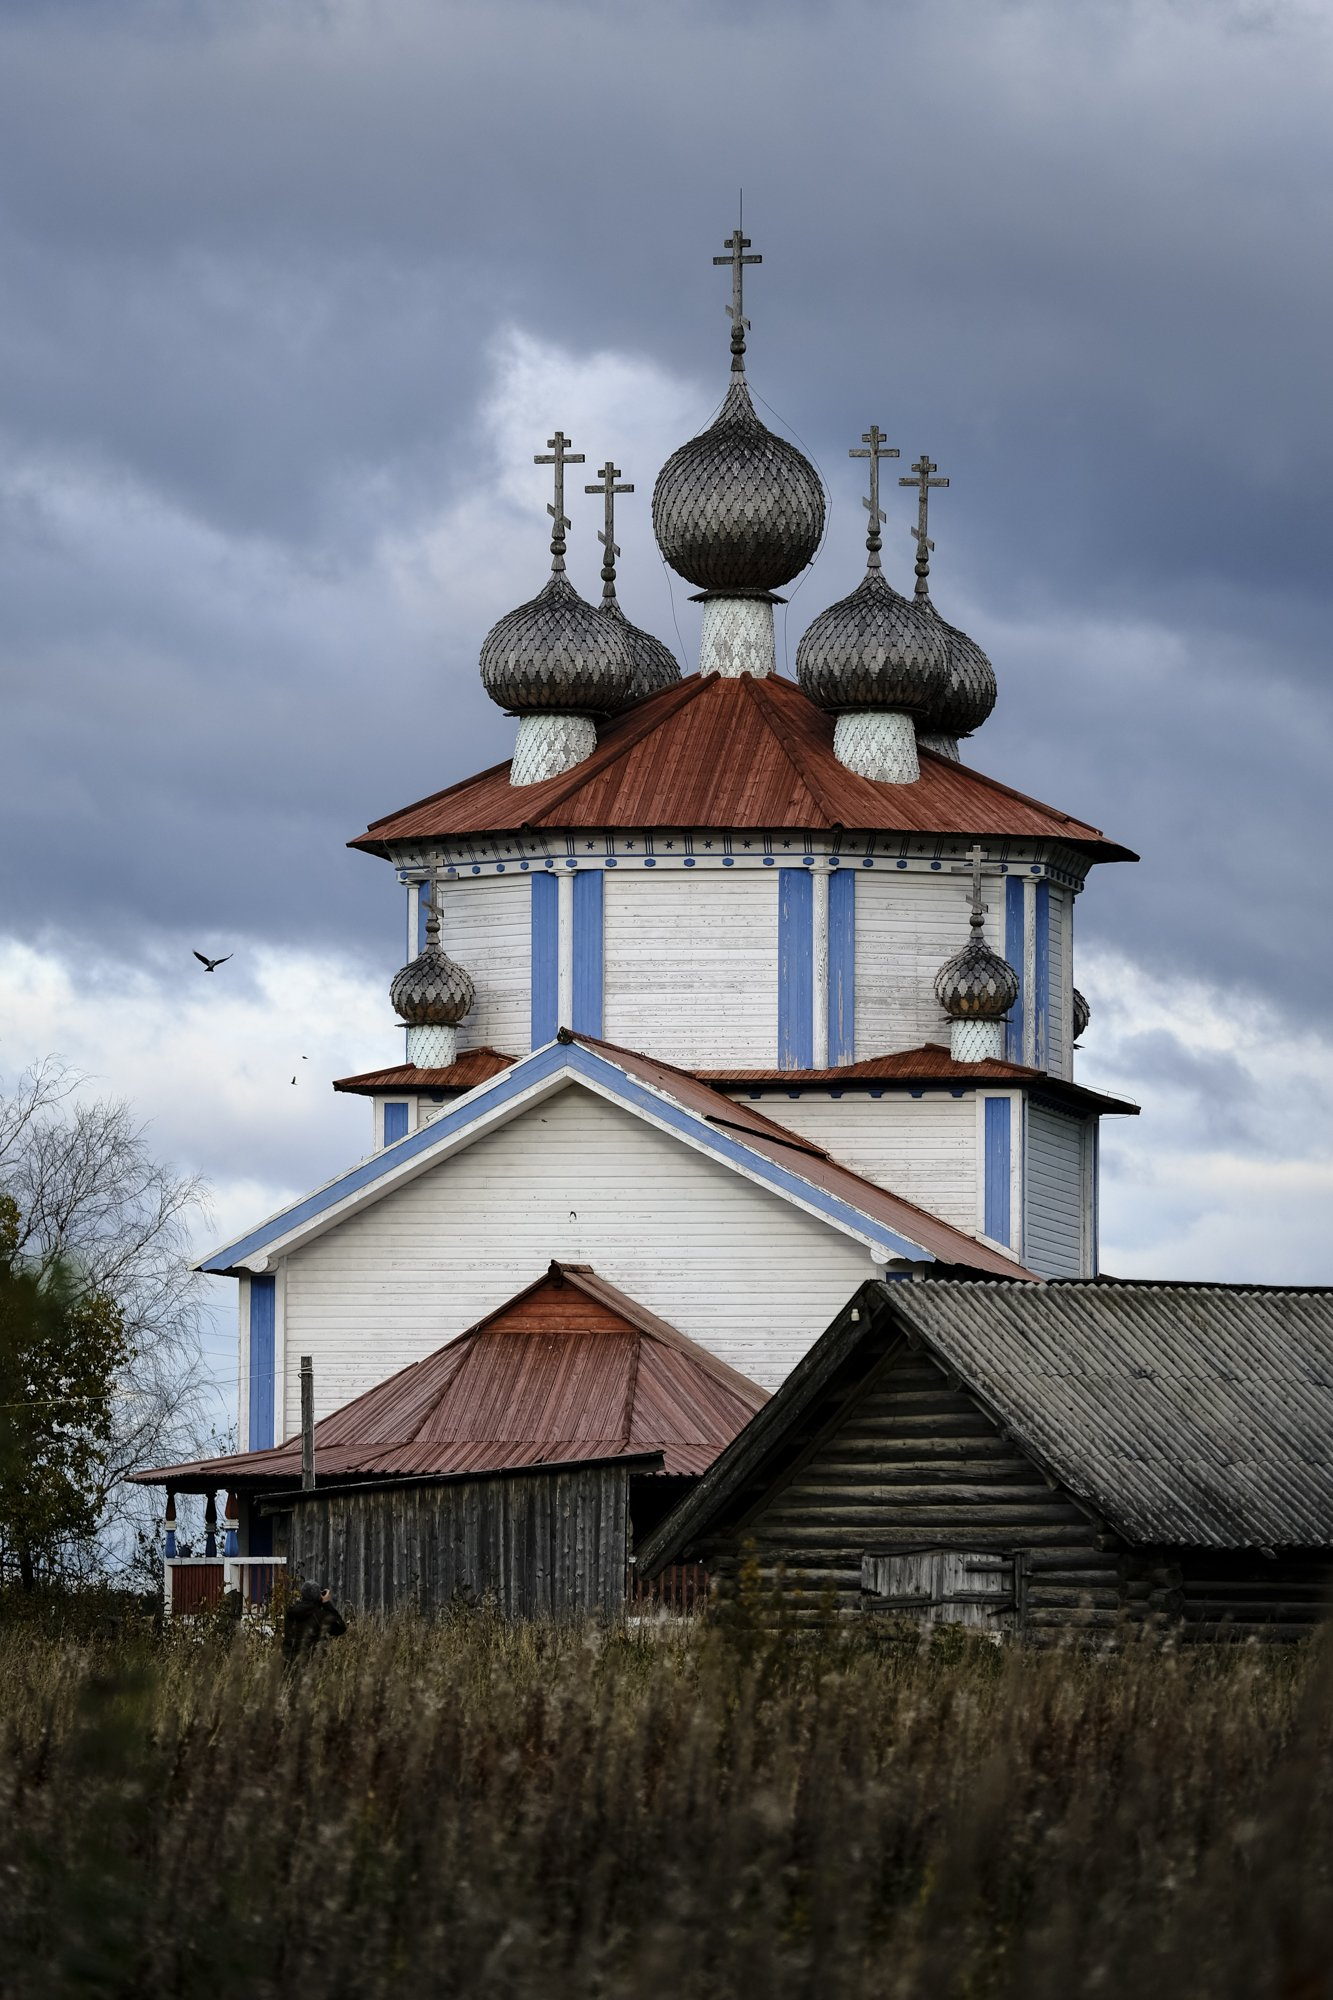 15. Stunning wooden churches in the Russian landscape